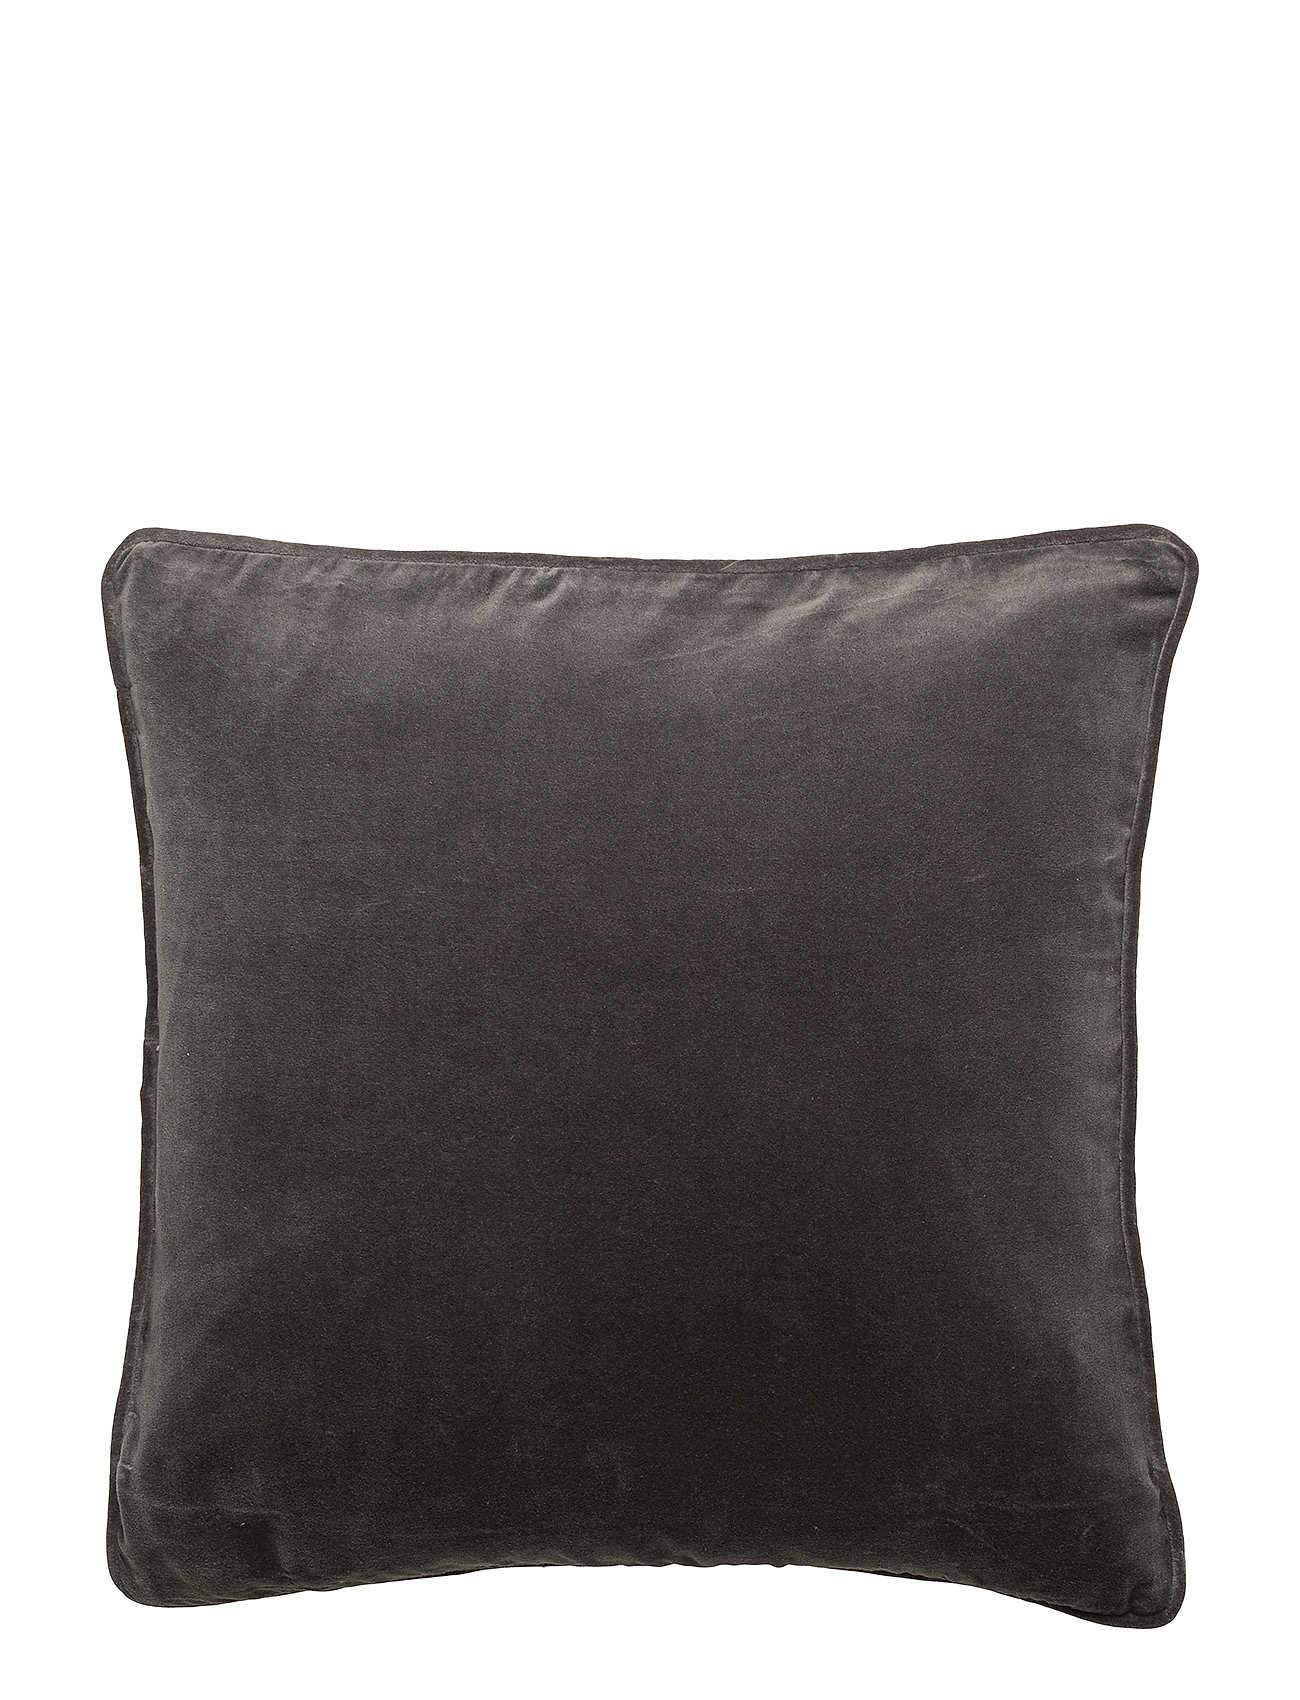 DAY Home Velvet Cushion Cover - UNBLACK